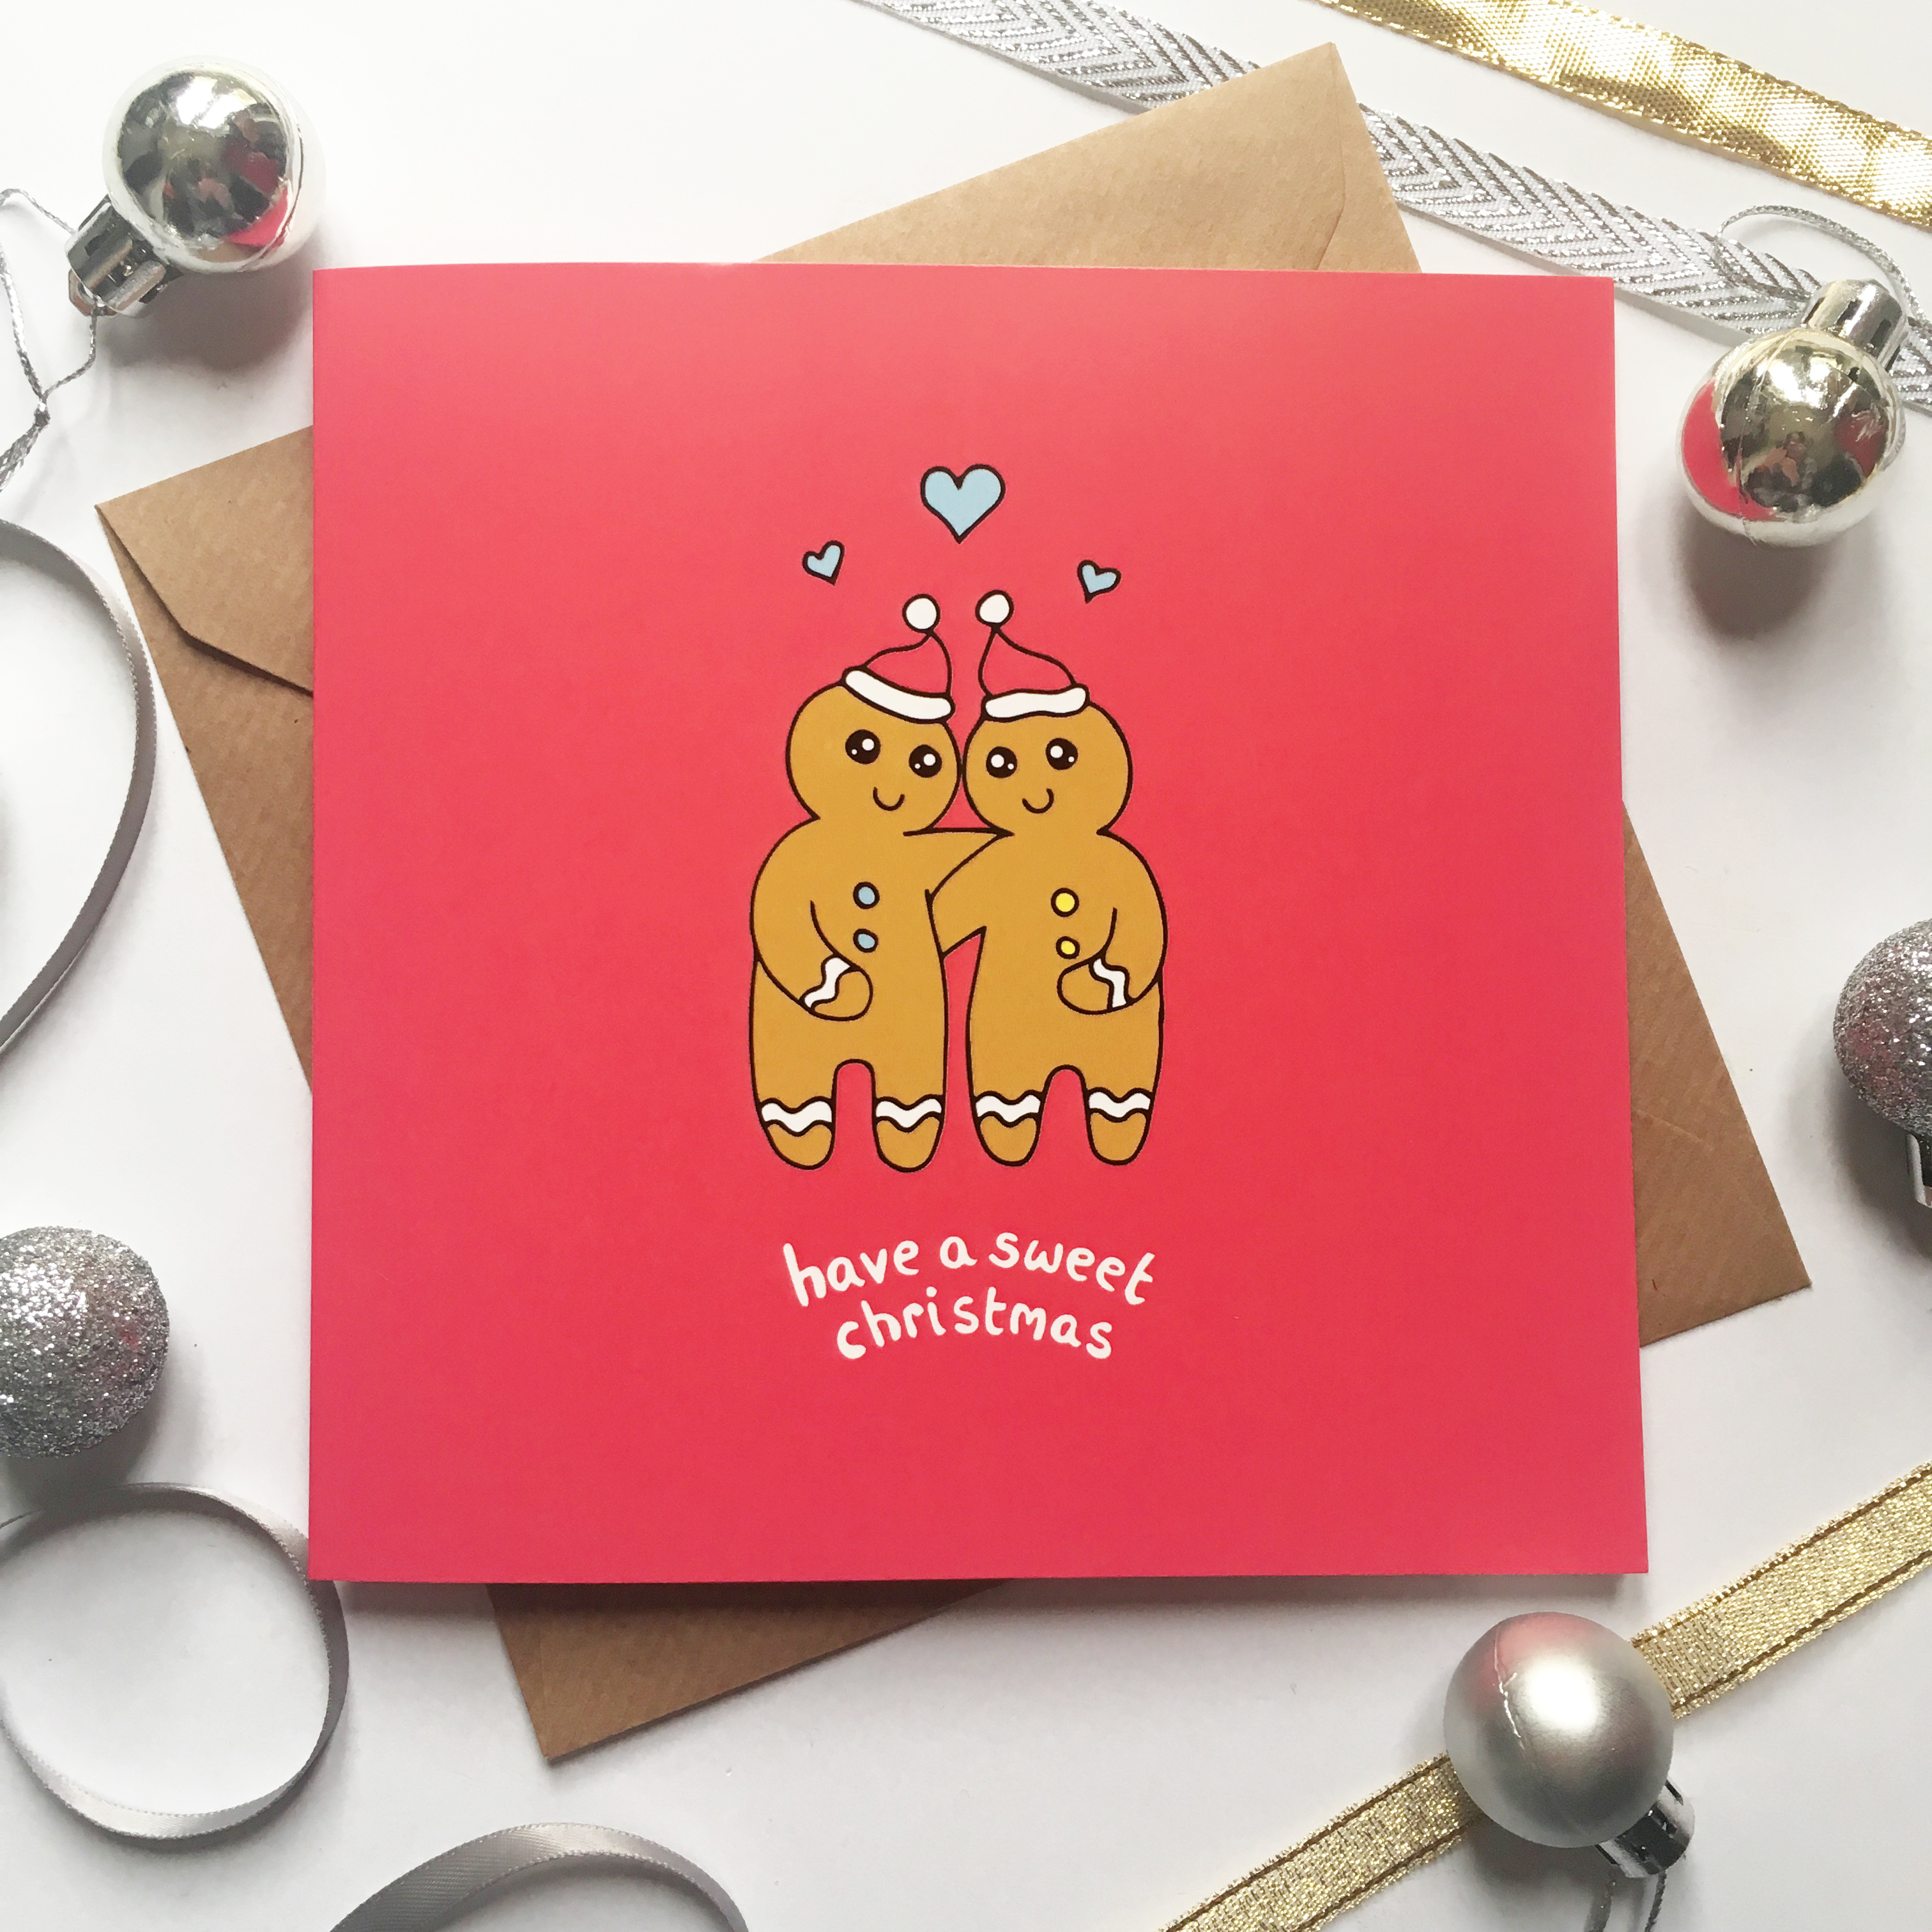 Gingerbread couple sweet christmas card by ladykerry ladykerry gingerbread couple sweet christmas card by ladykerry kristyandbryce Gallery